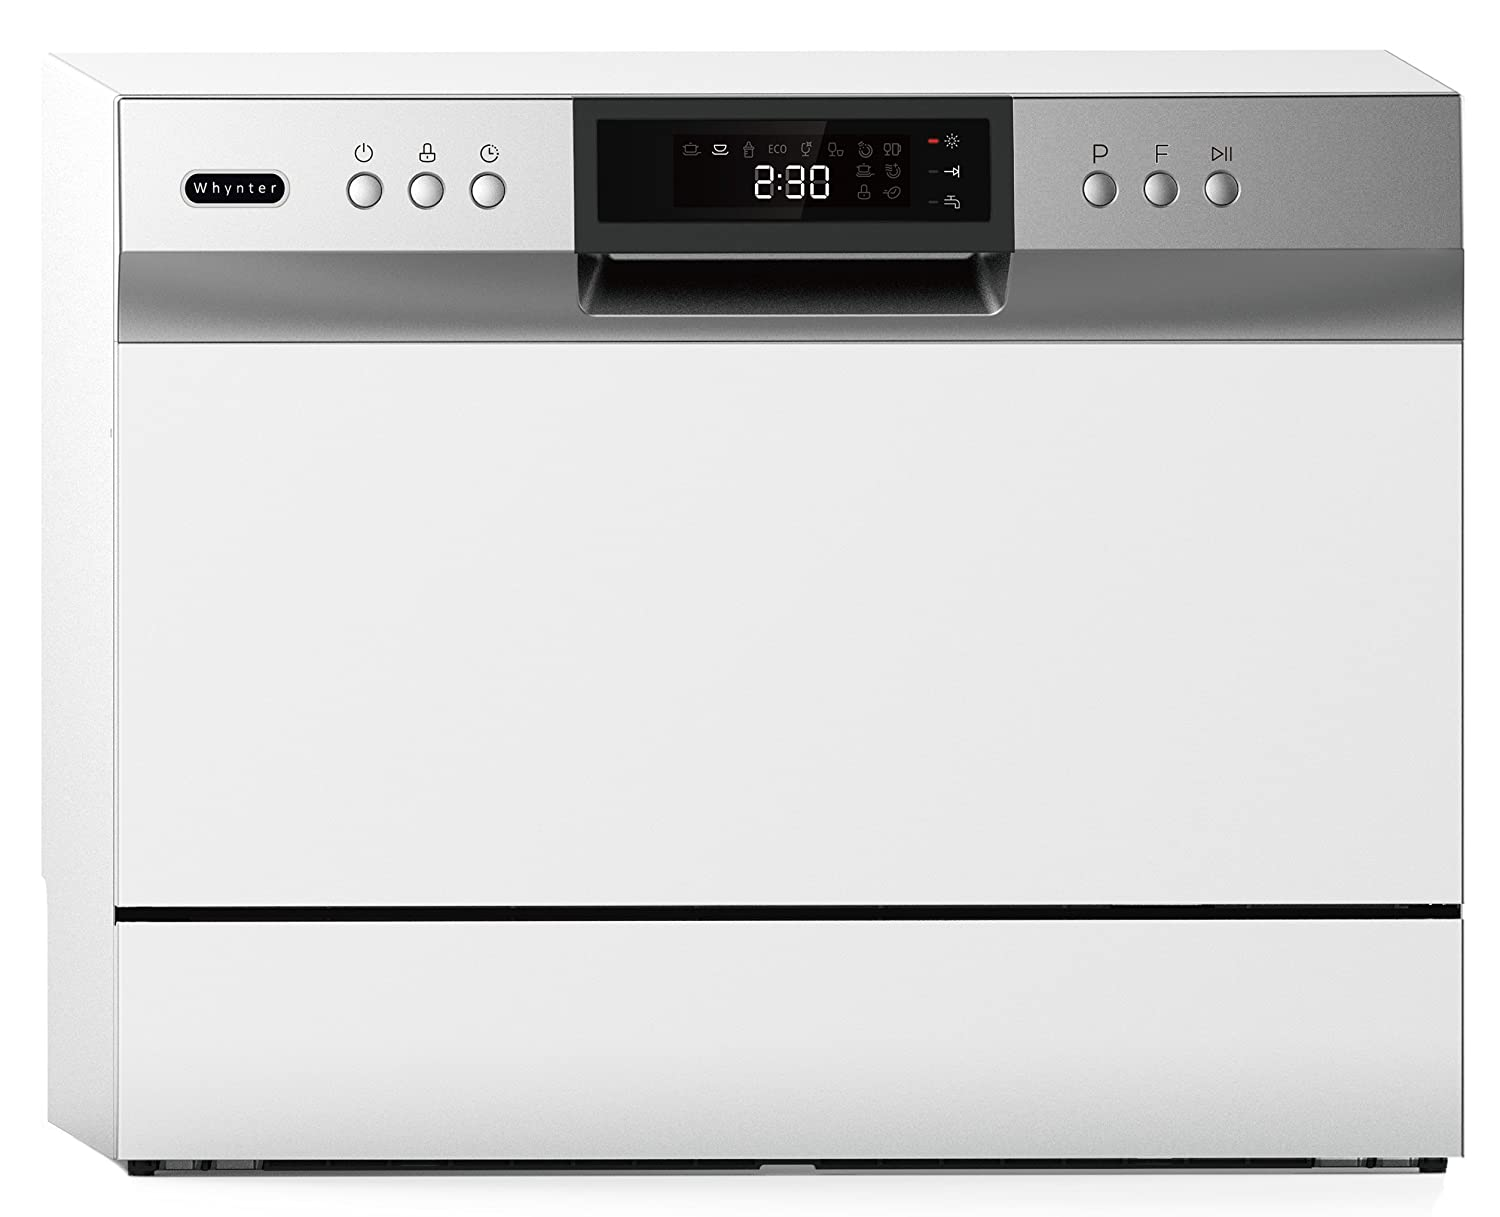 Whynter CDW-6831WES Energy Star 6 Place Setting LED, White Countertop Portable Dishwasher,